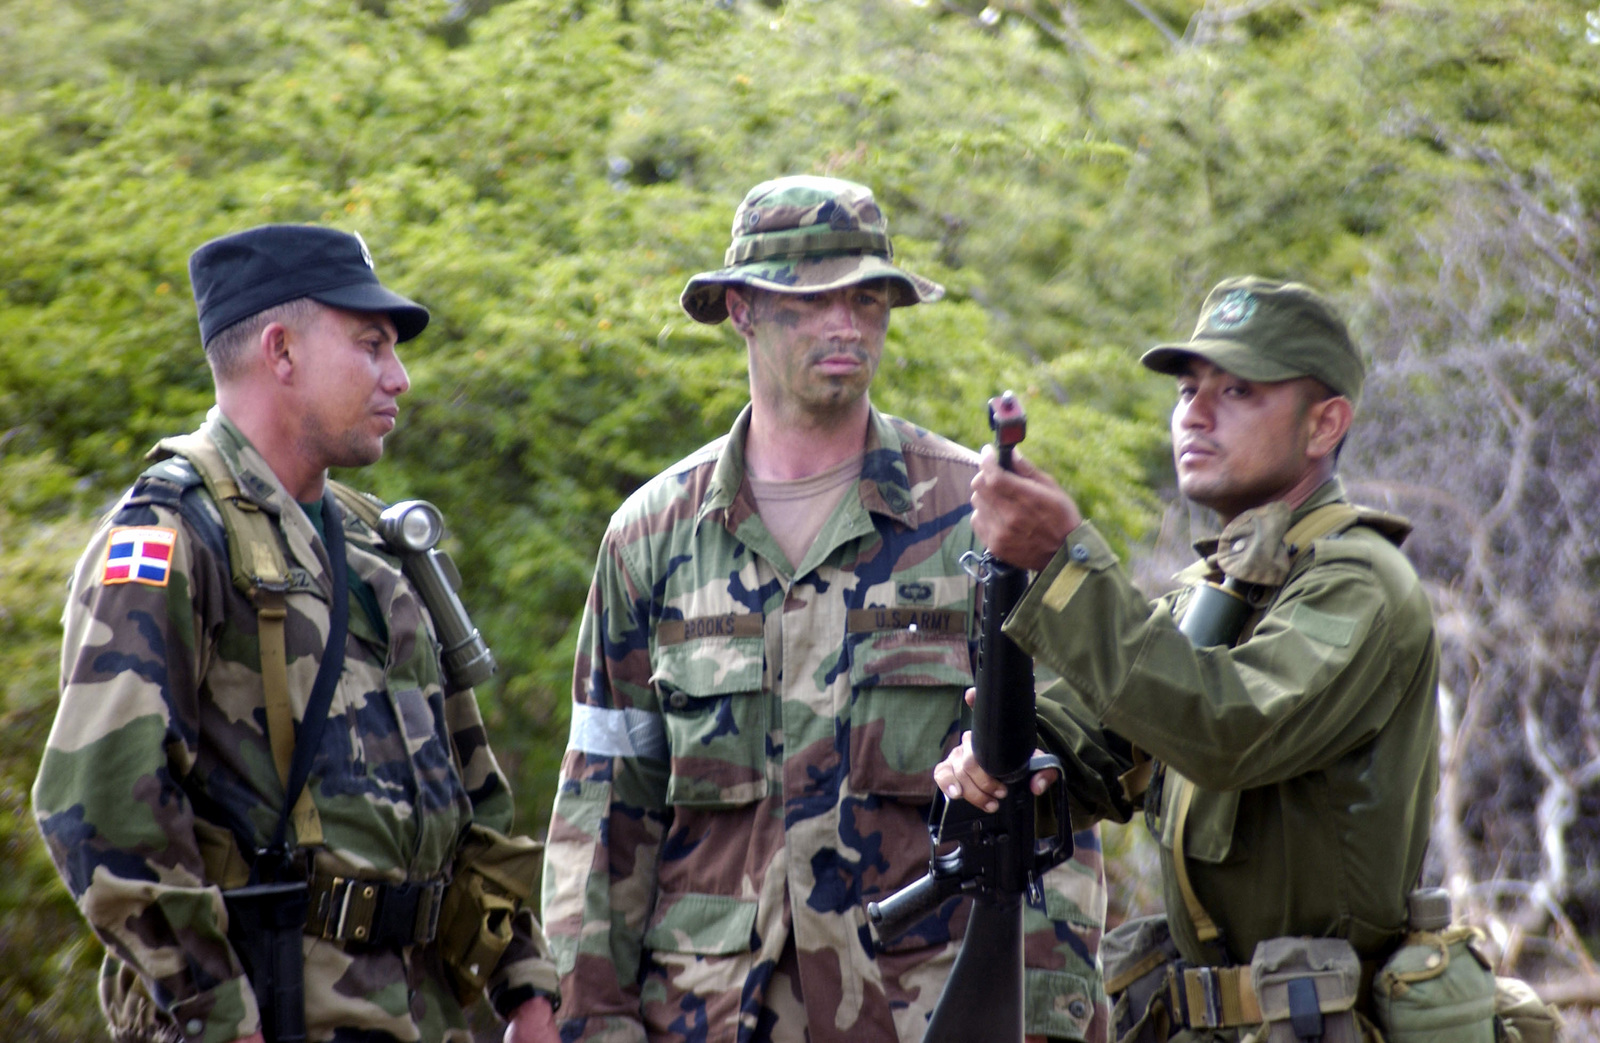 An observer and controller, US Army (USA) SPECIALIST First